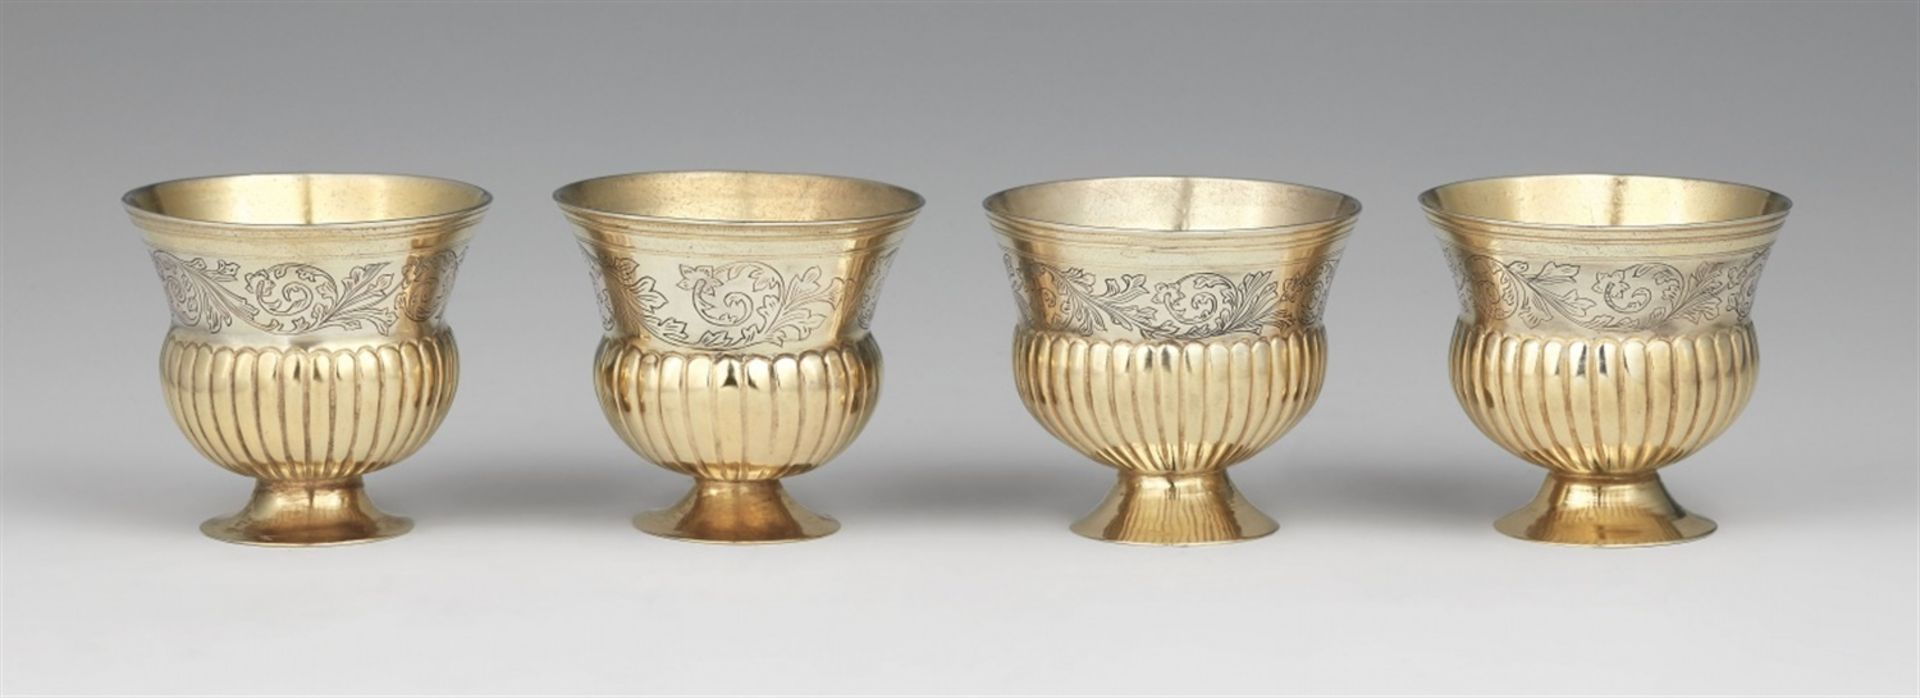 Los 730 - Four Augsburg silver beakersSilver; partly gilded. Parcel-gilt silver beakers with moulded rims